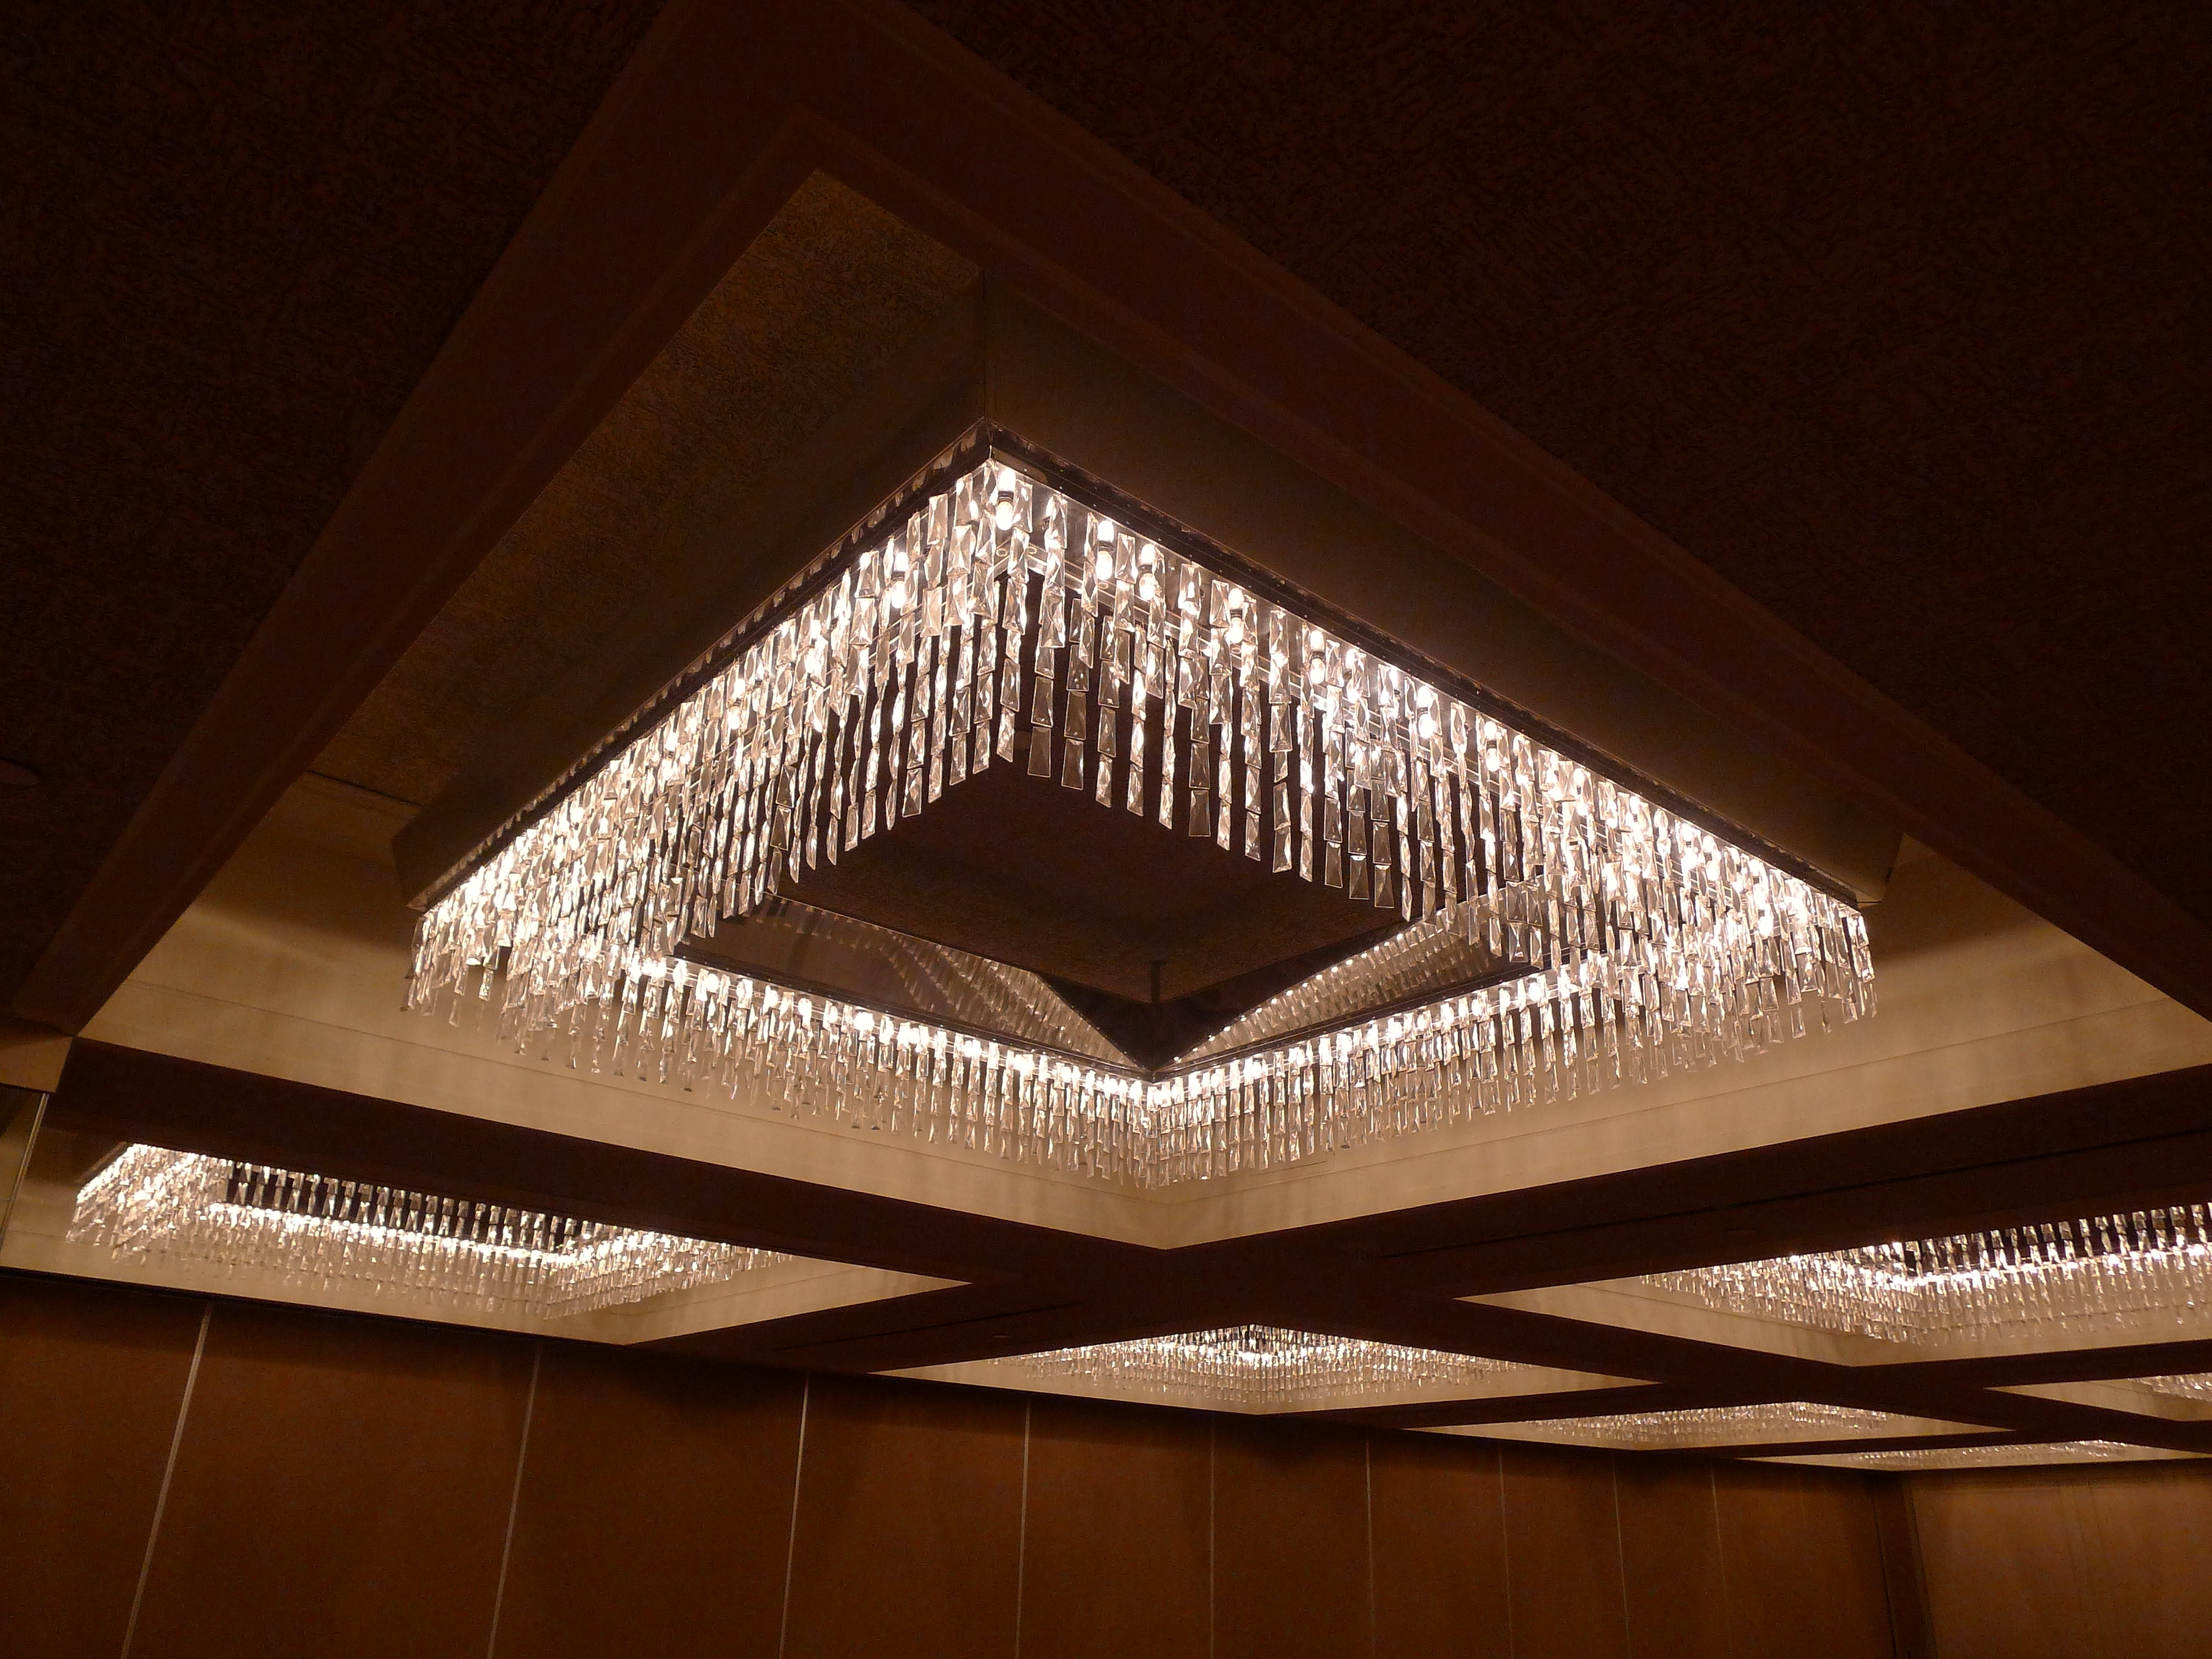 Great Low Profile Chandelier With Lots Of Sparkle And Glamour Within Most Current Ballroom Chandeliers (View 3 of 15)